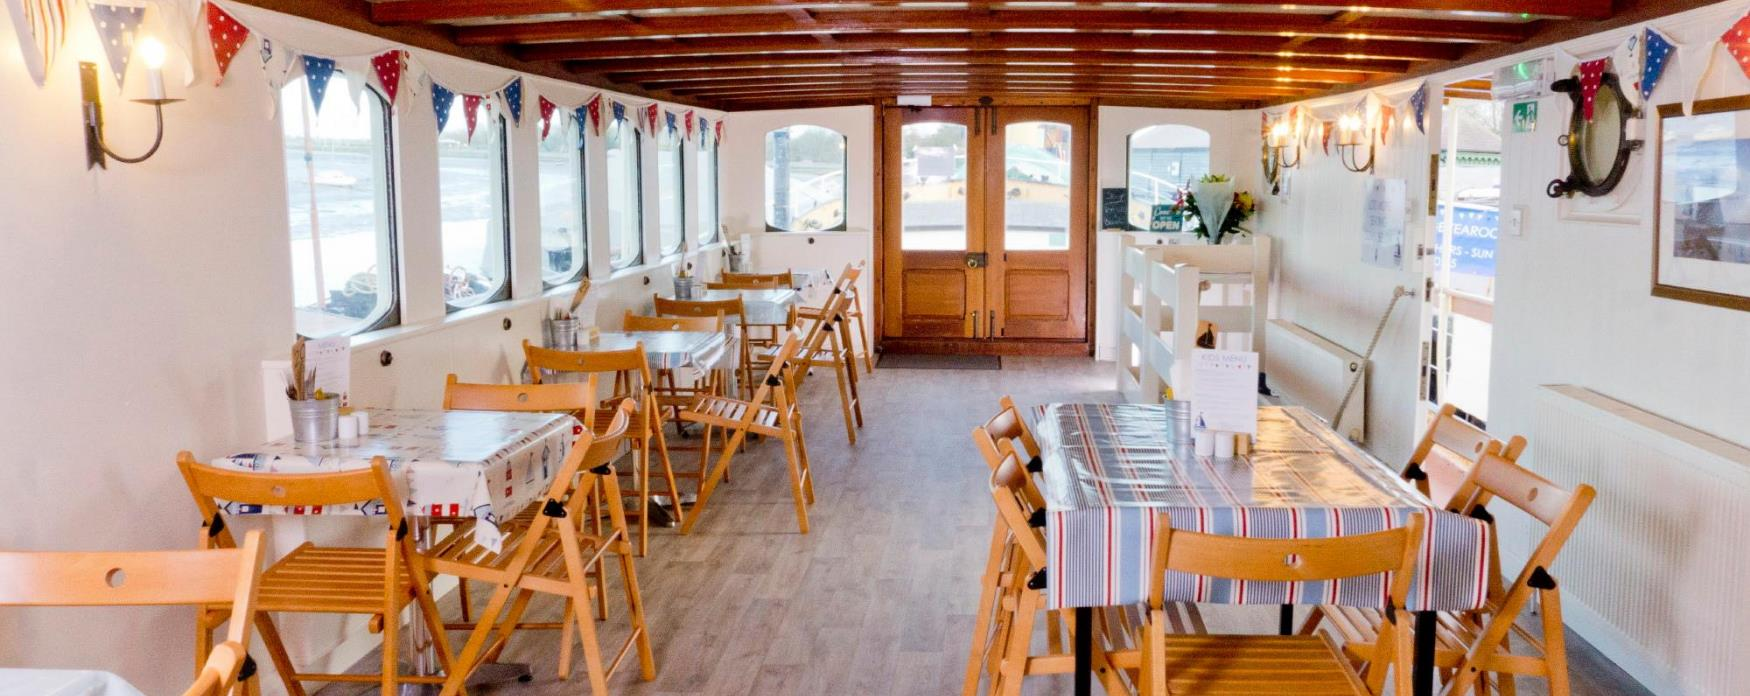 The interior of The Barge Tea Rooms